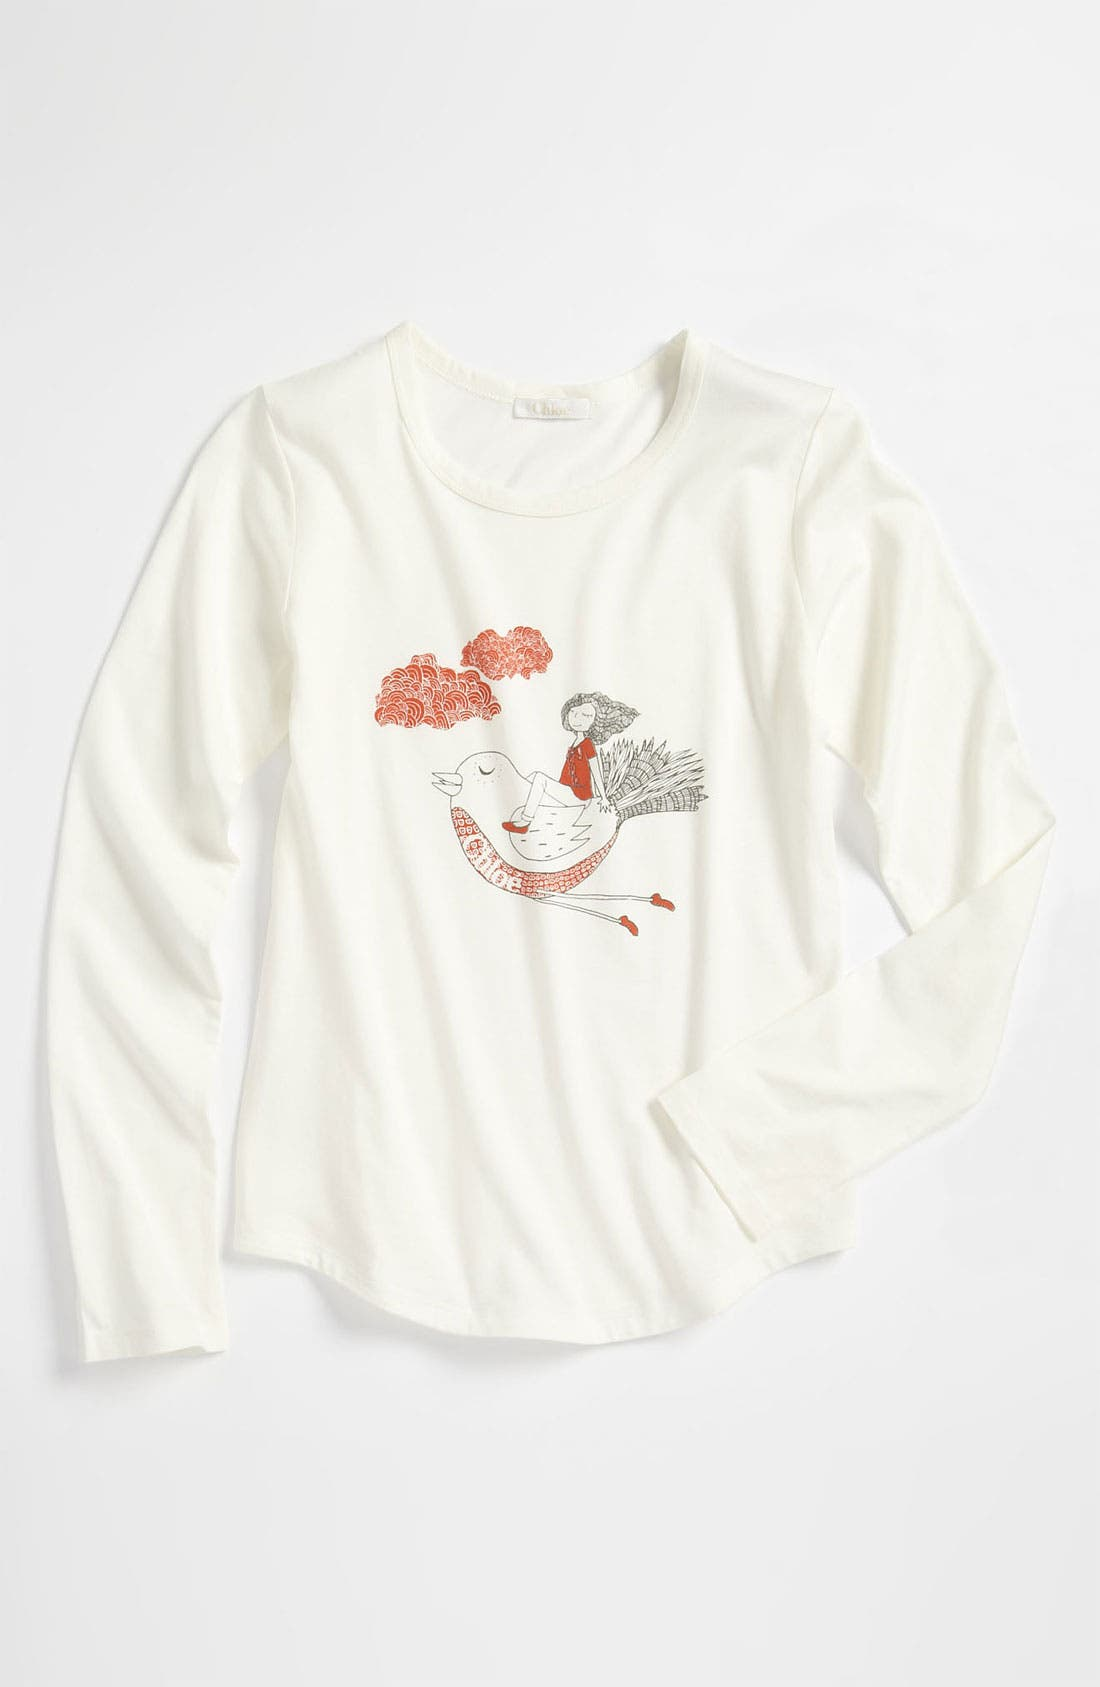 Alternate Image 1 Selected - Chloé Graphic Tee (Little Girls & Big Girls)